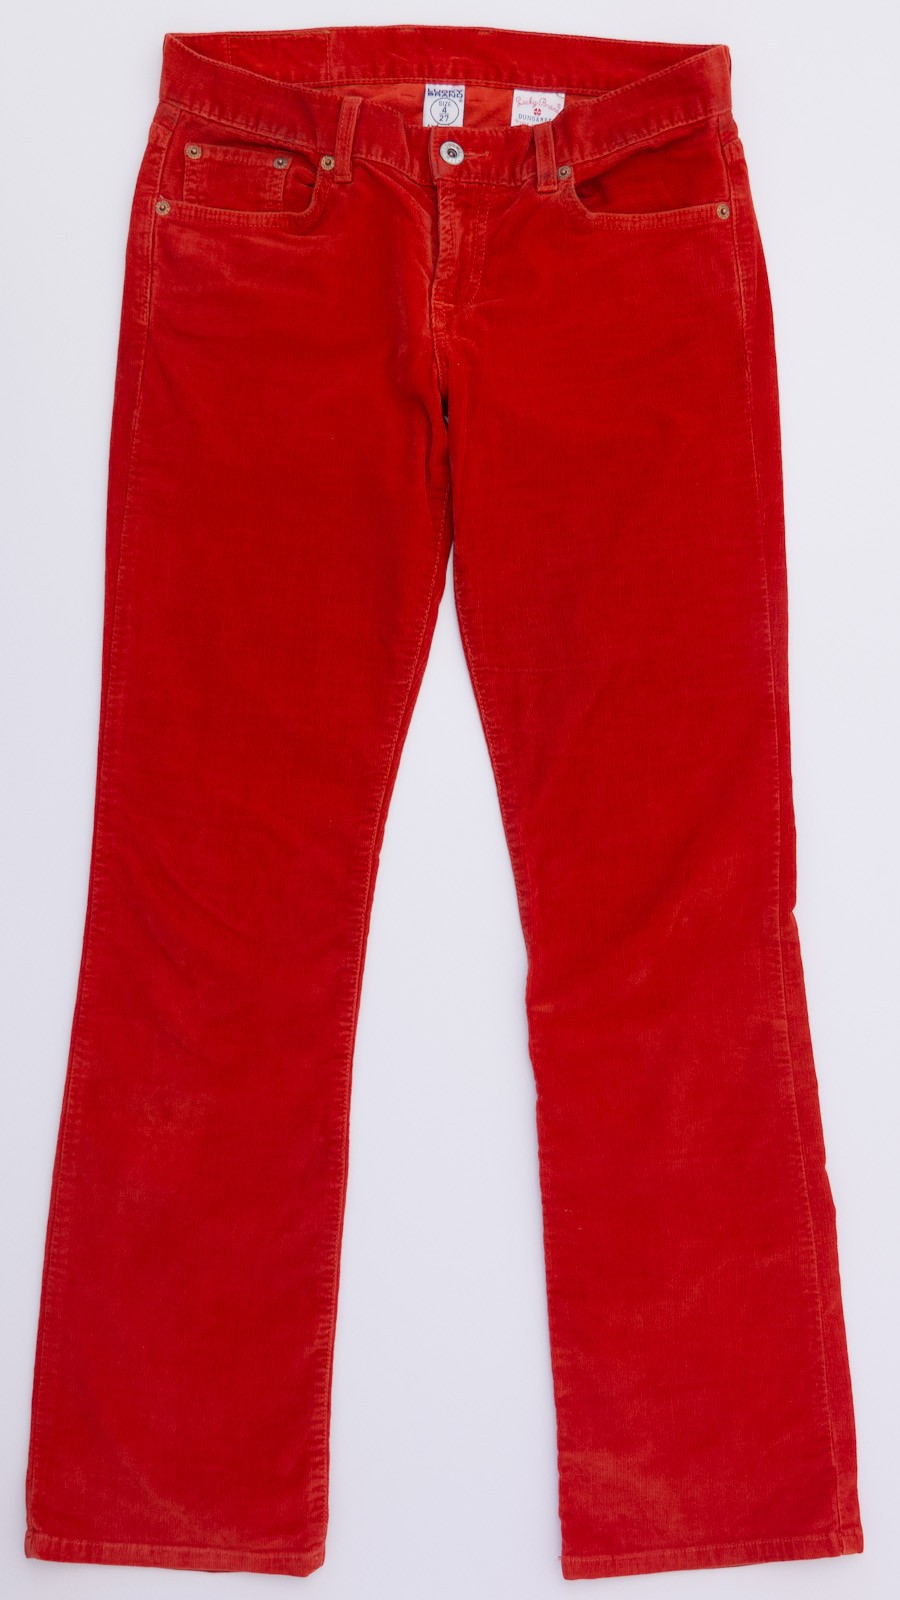 Lucky Brand Corduroy Pants Women's 4/27